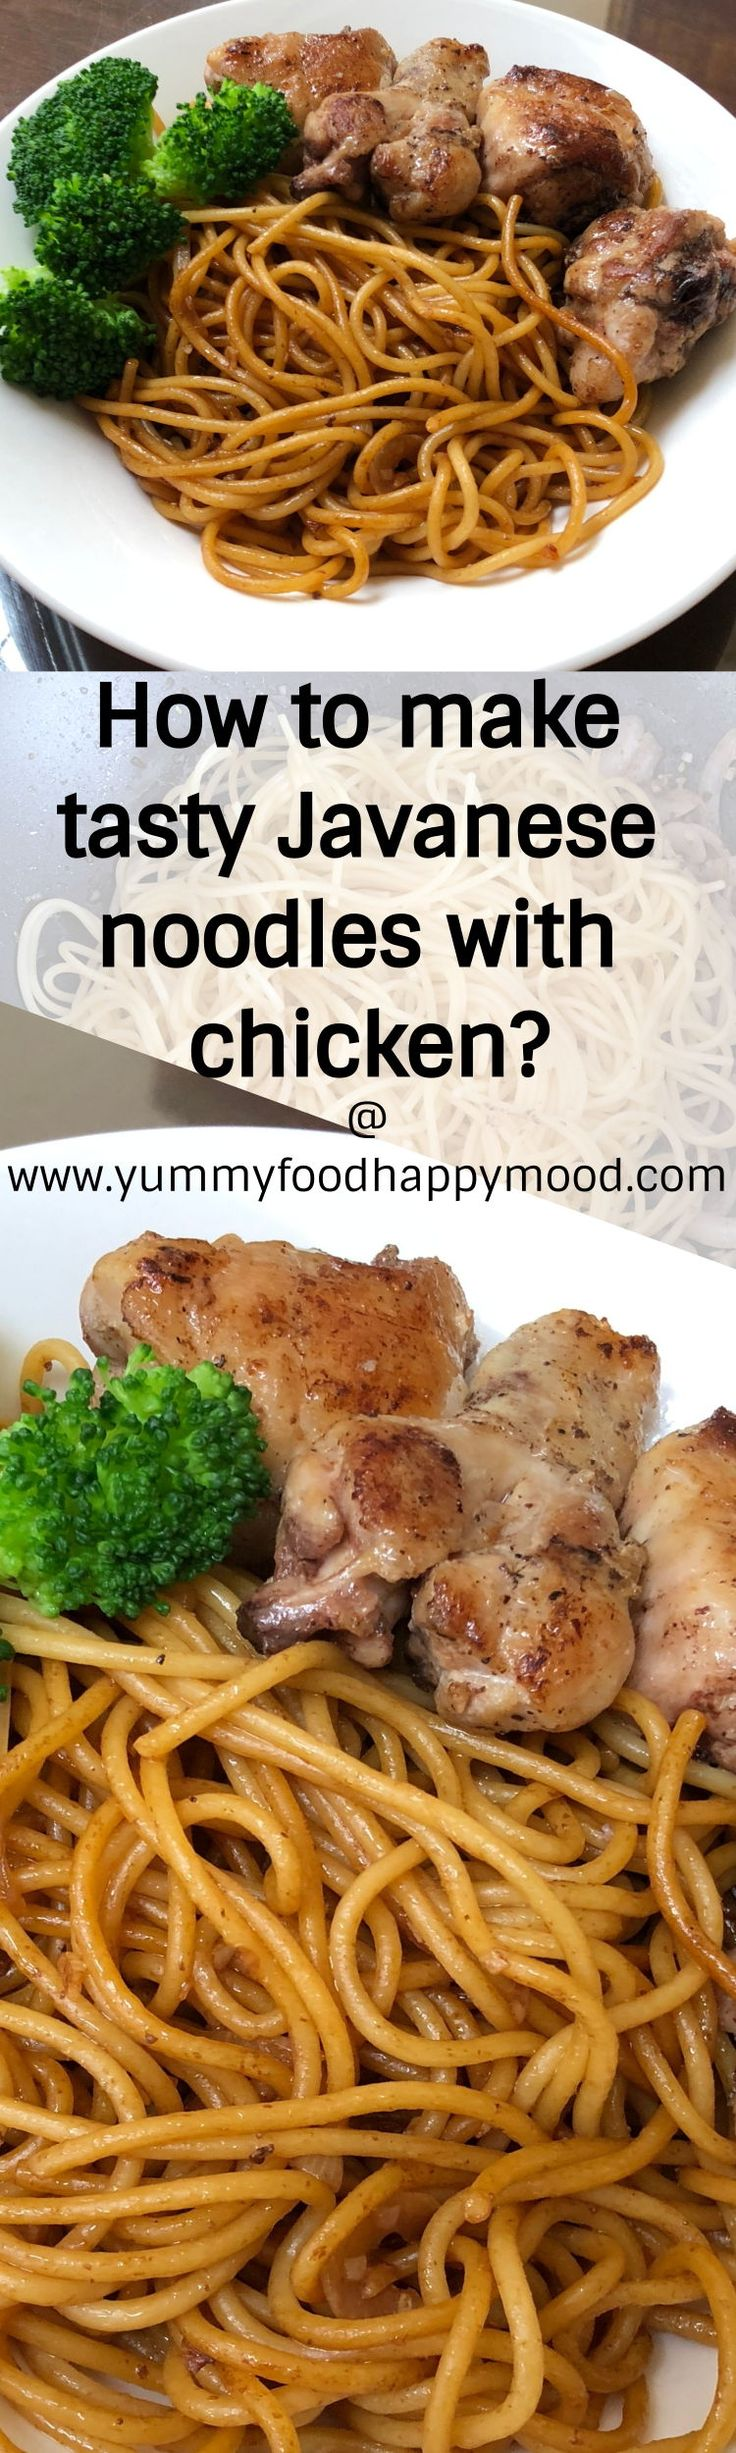 Want to make noodles? Try Javanese noodles! It's basically spaghetti, but with Asian flavors. #noodles #chickenrecipes #spaghetti